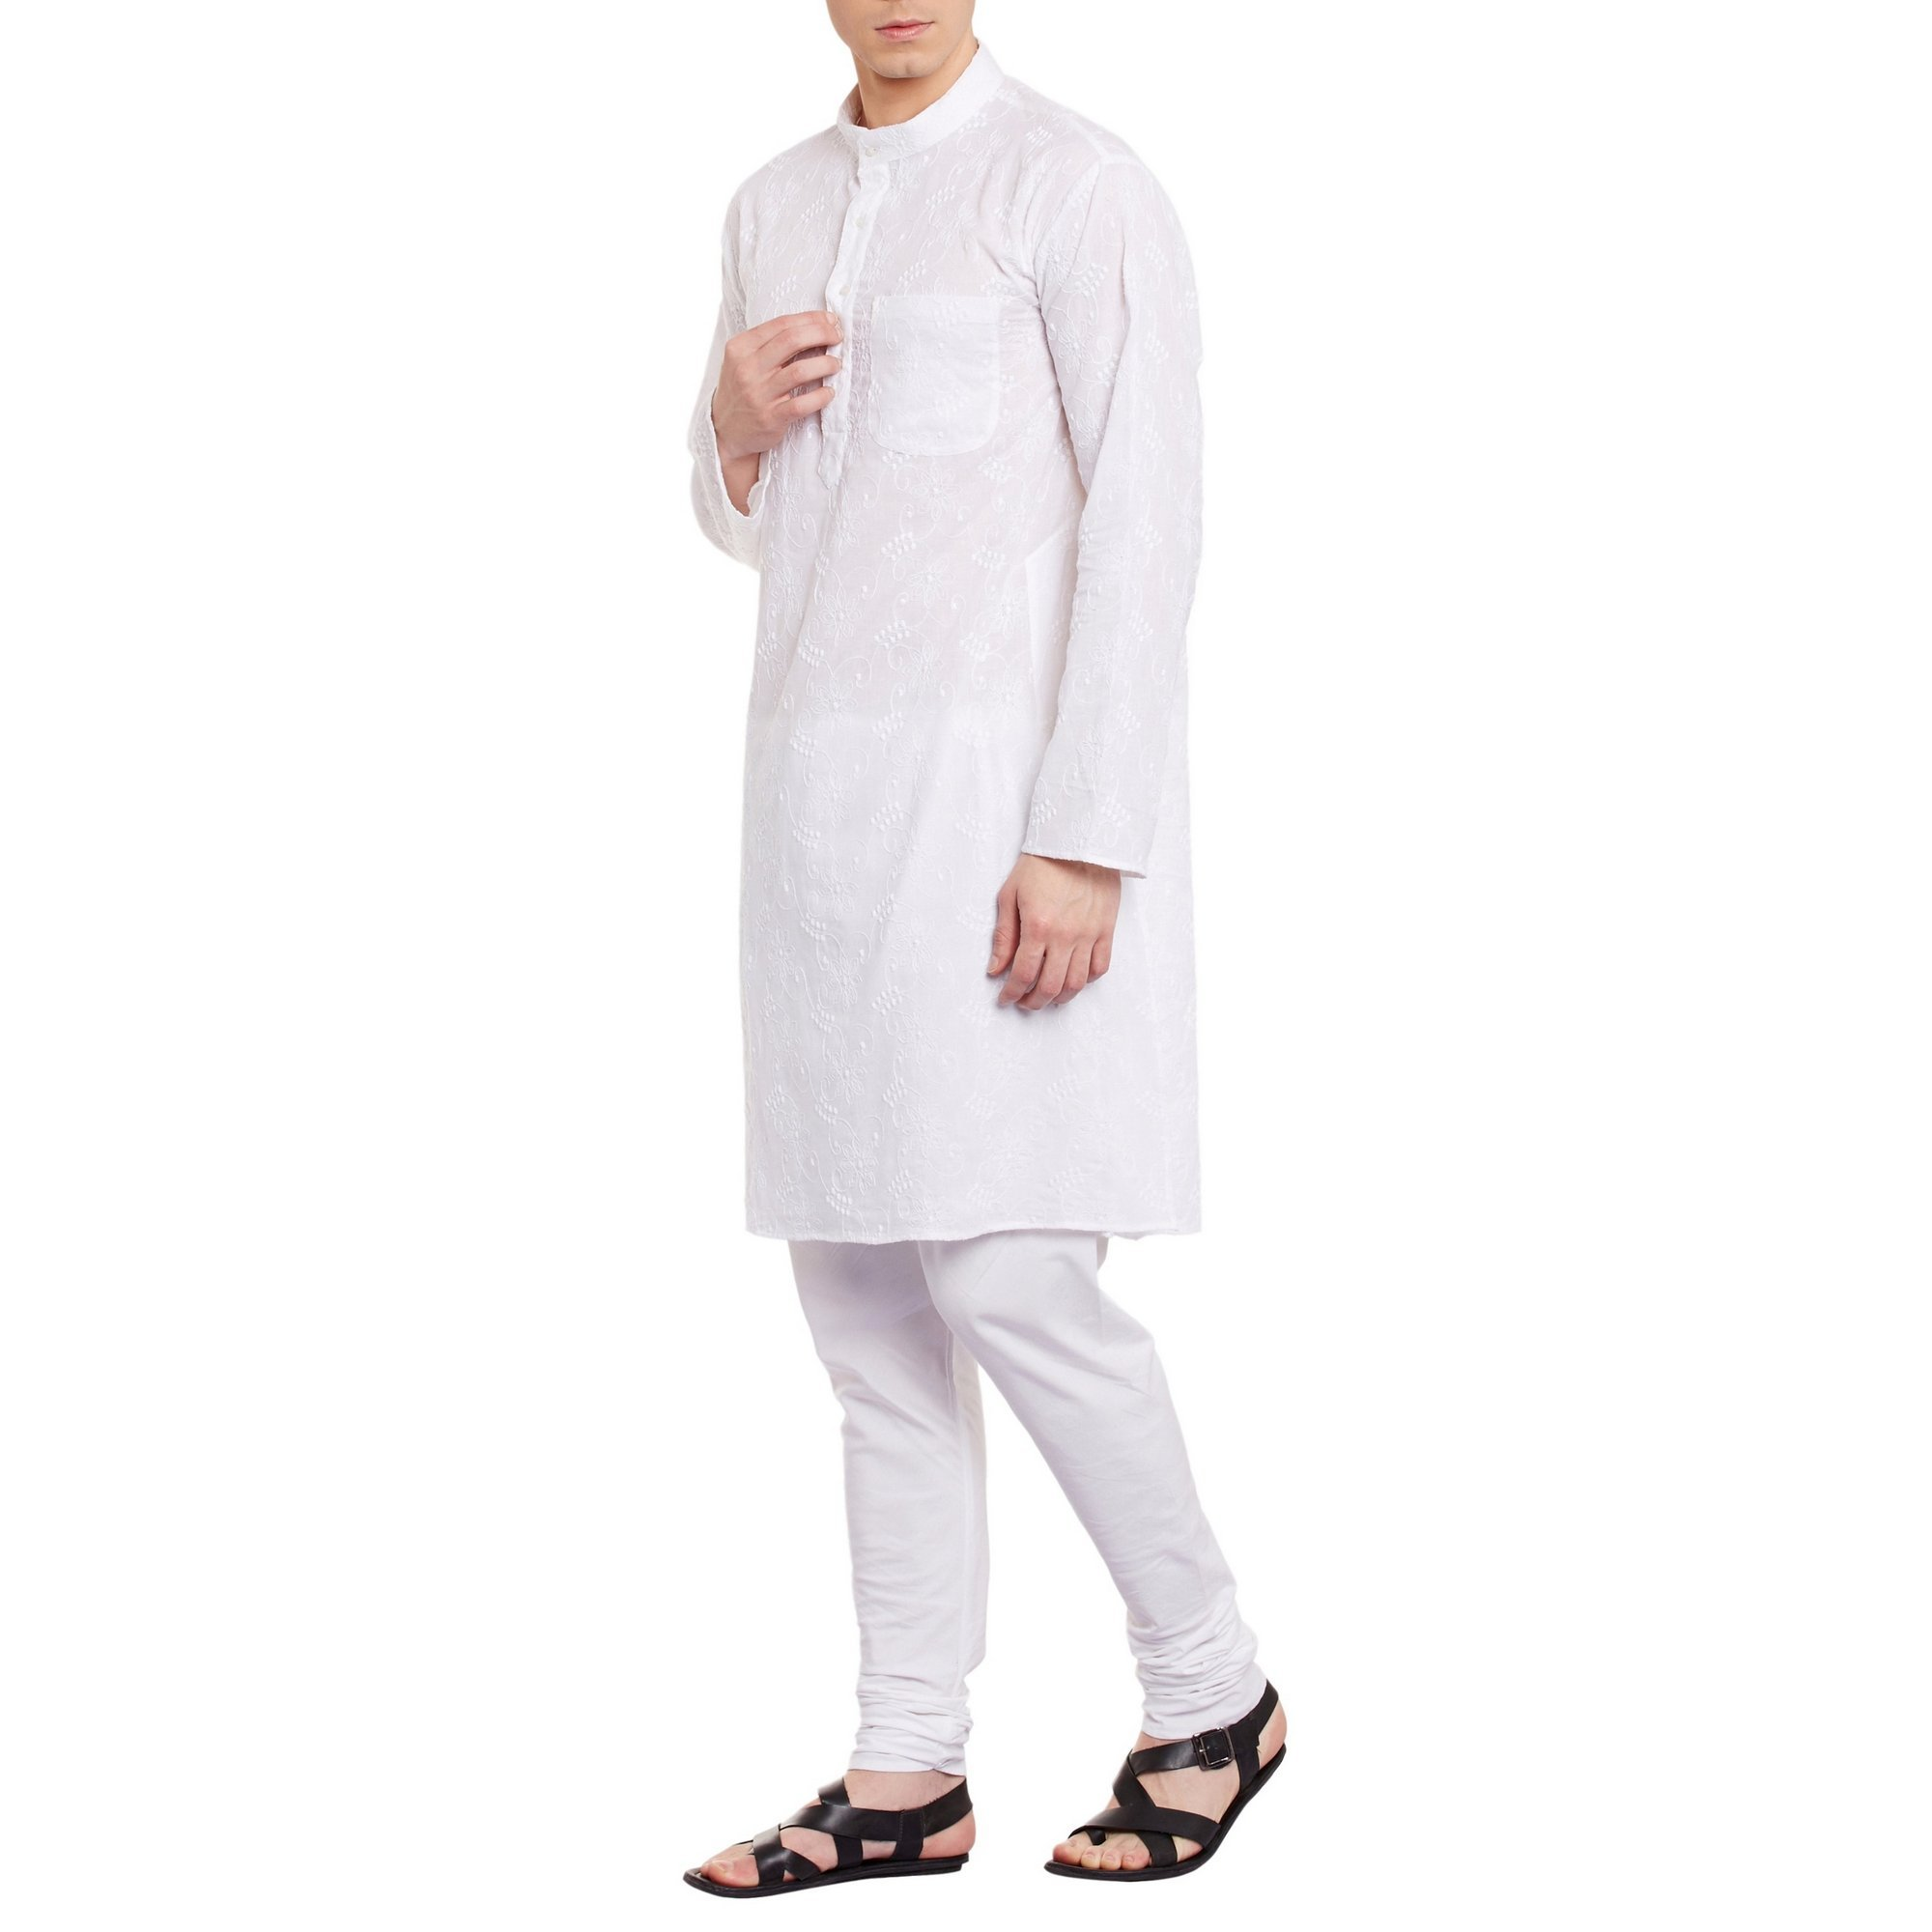 ShalinIndia Mens Embroidered Cutwork Cotton Kurta With Churidar Pajama Trousers Machine Embroidery,White Chest Size: 42 Inch by ShalinIndia (Image #3)